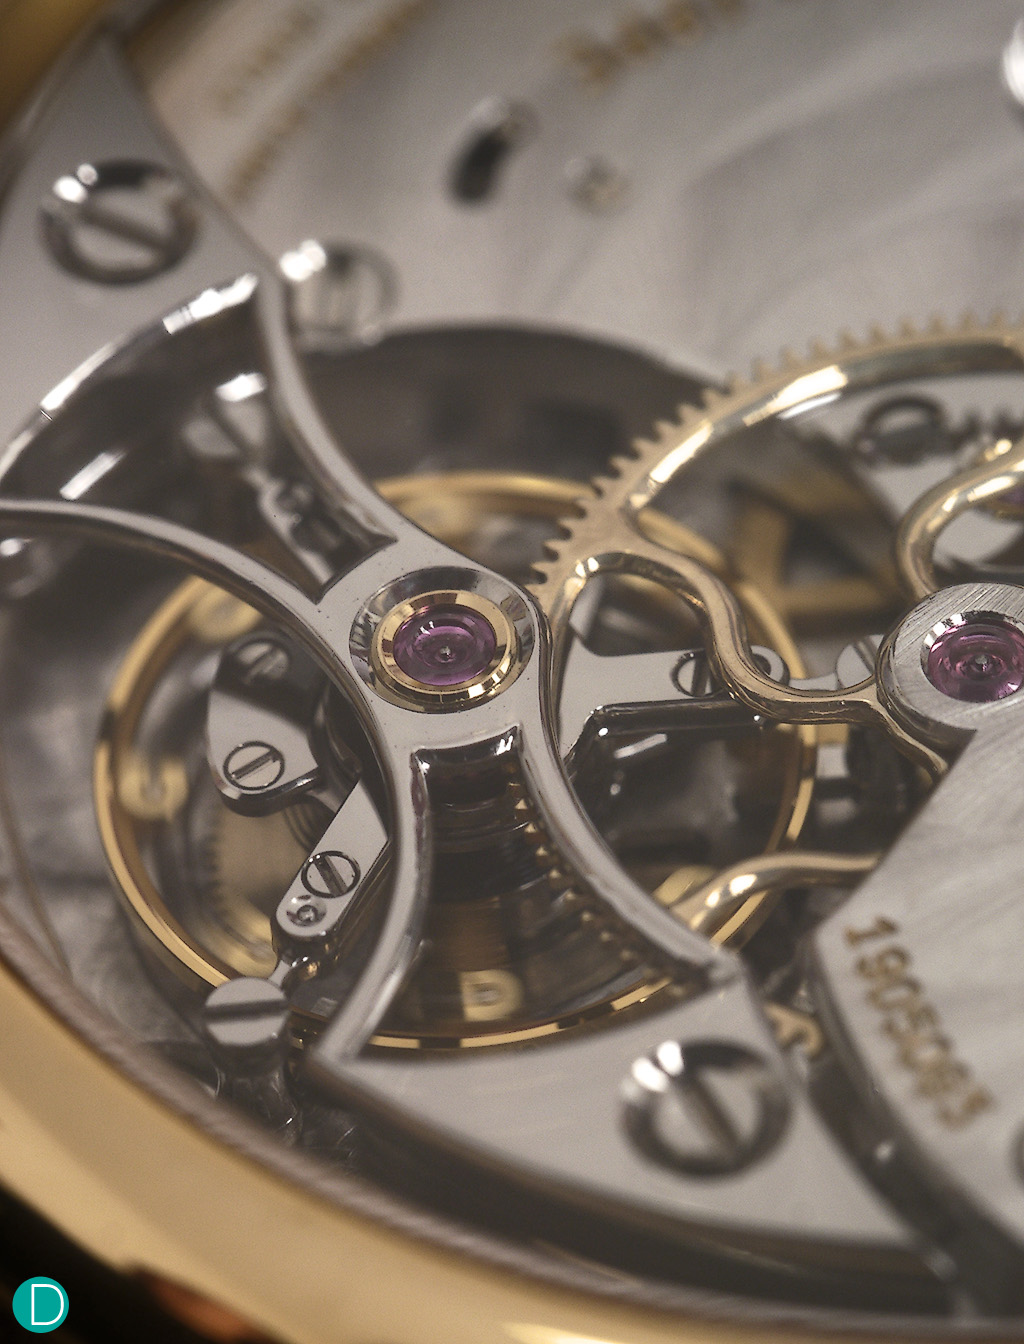 The tourbillon bridge. Classical in design and execution. Note the sharp inward and outward edges, which are very well finished. Note the polished bridge edges. Very well done.